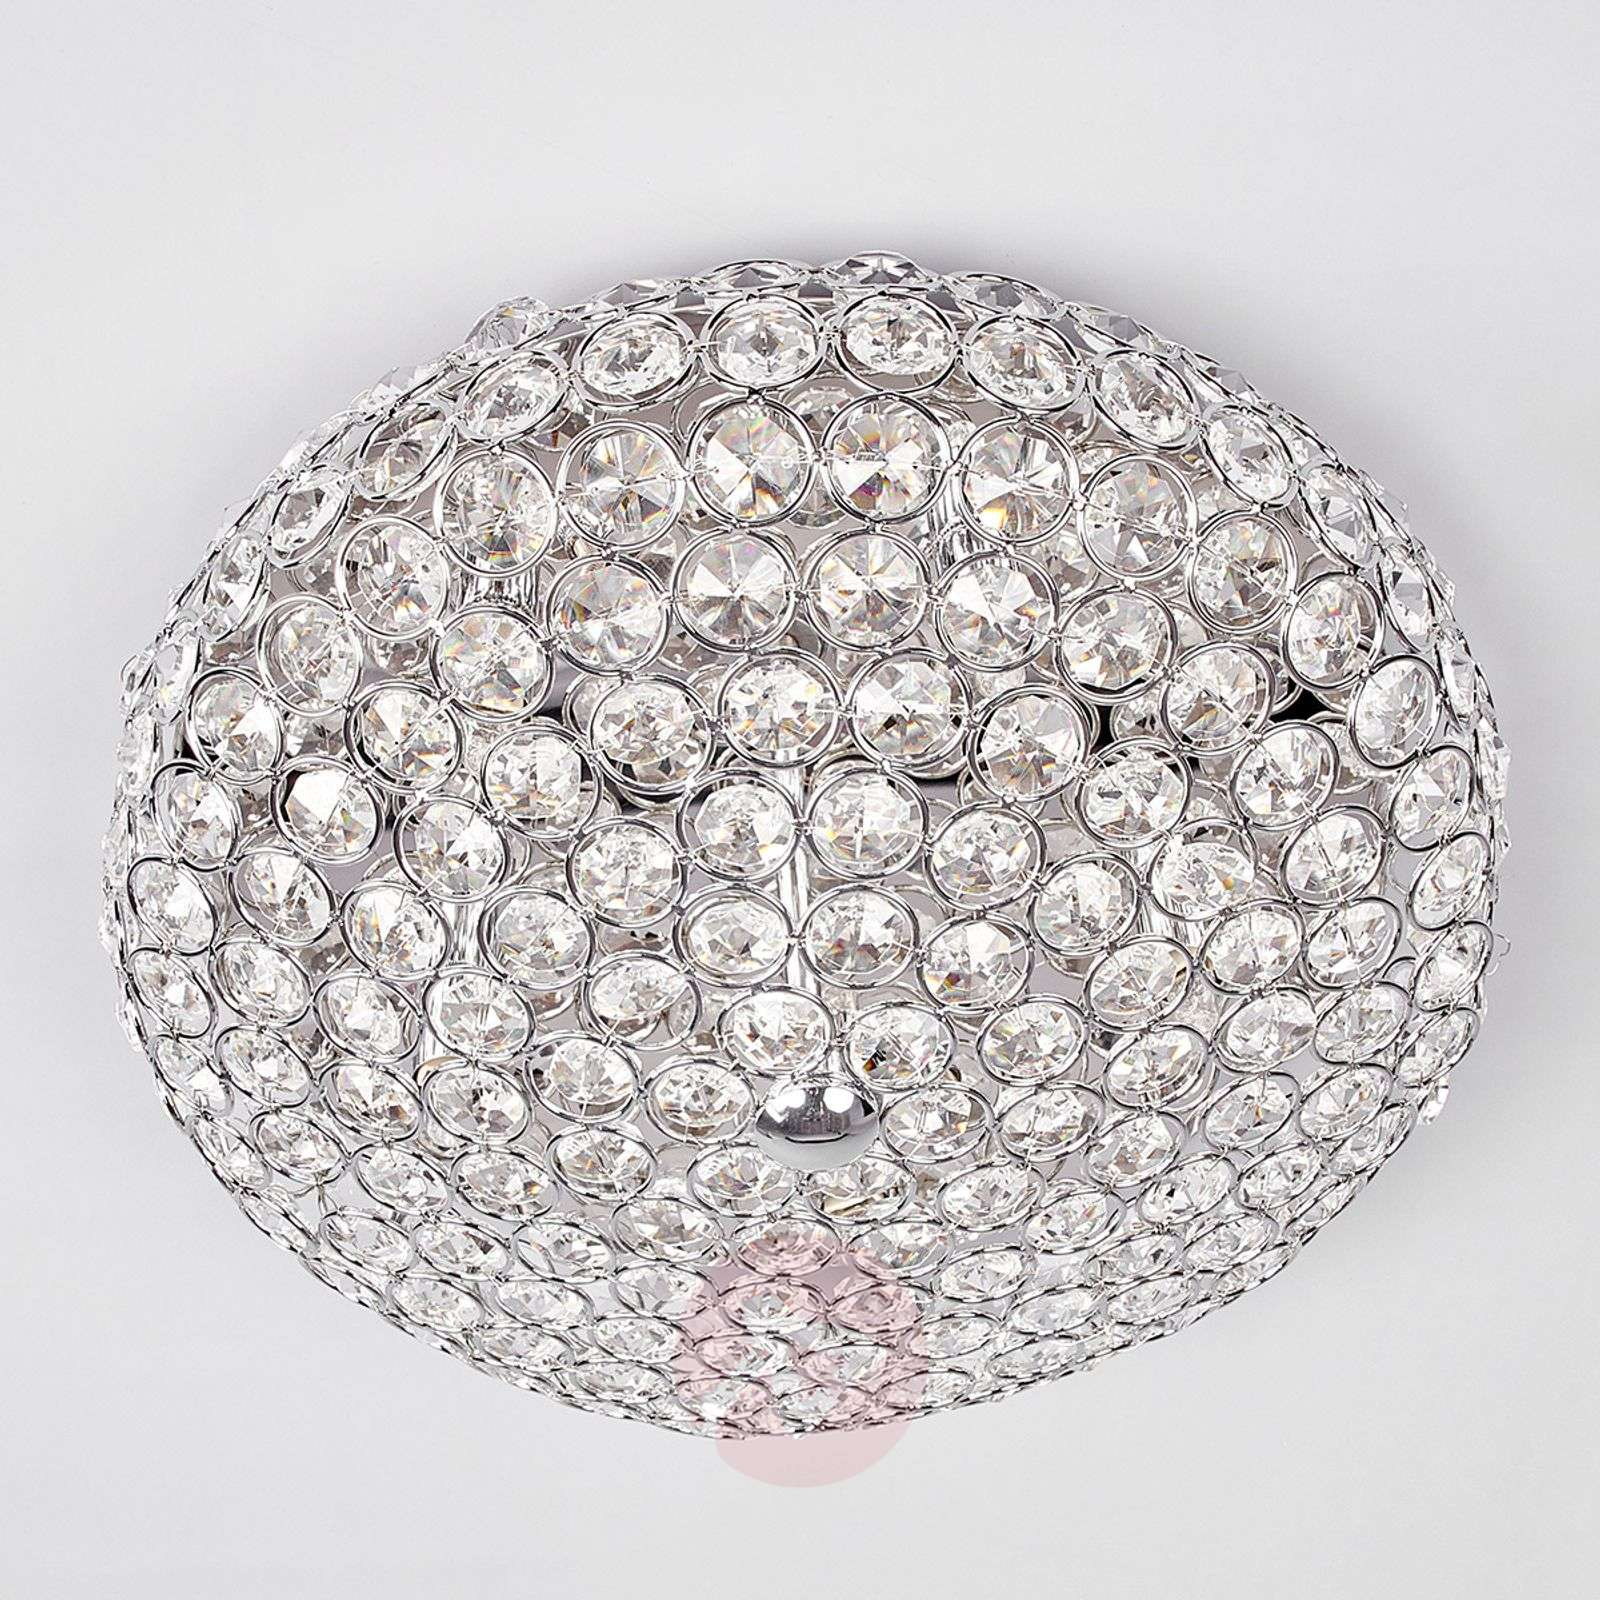 Decorative Edda crystal ceiling light-9973001-01